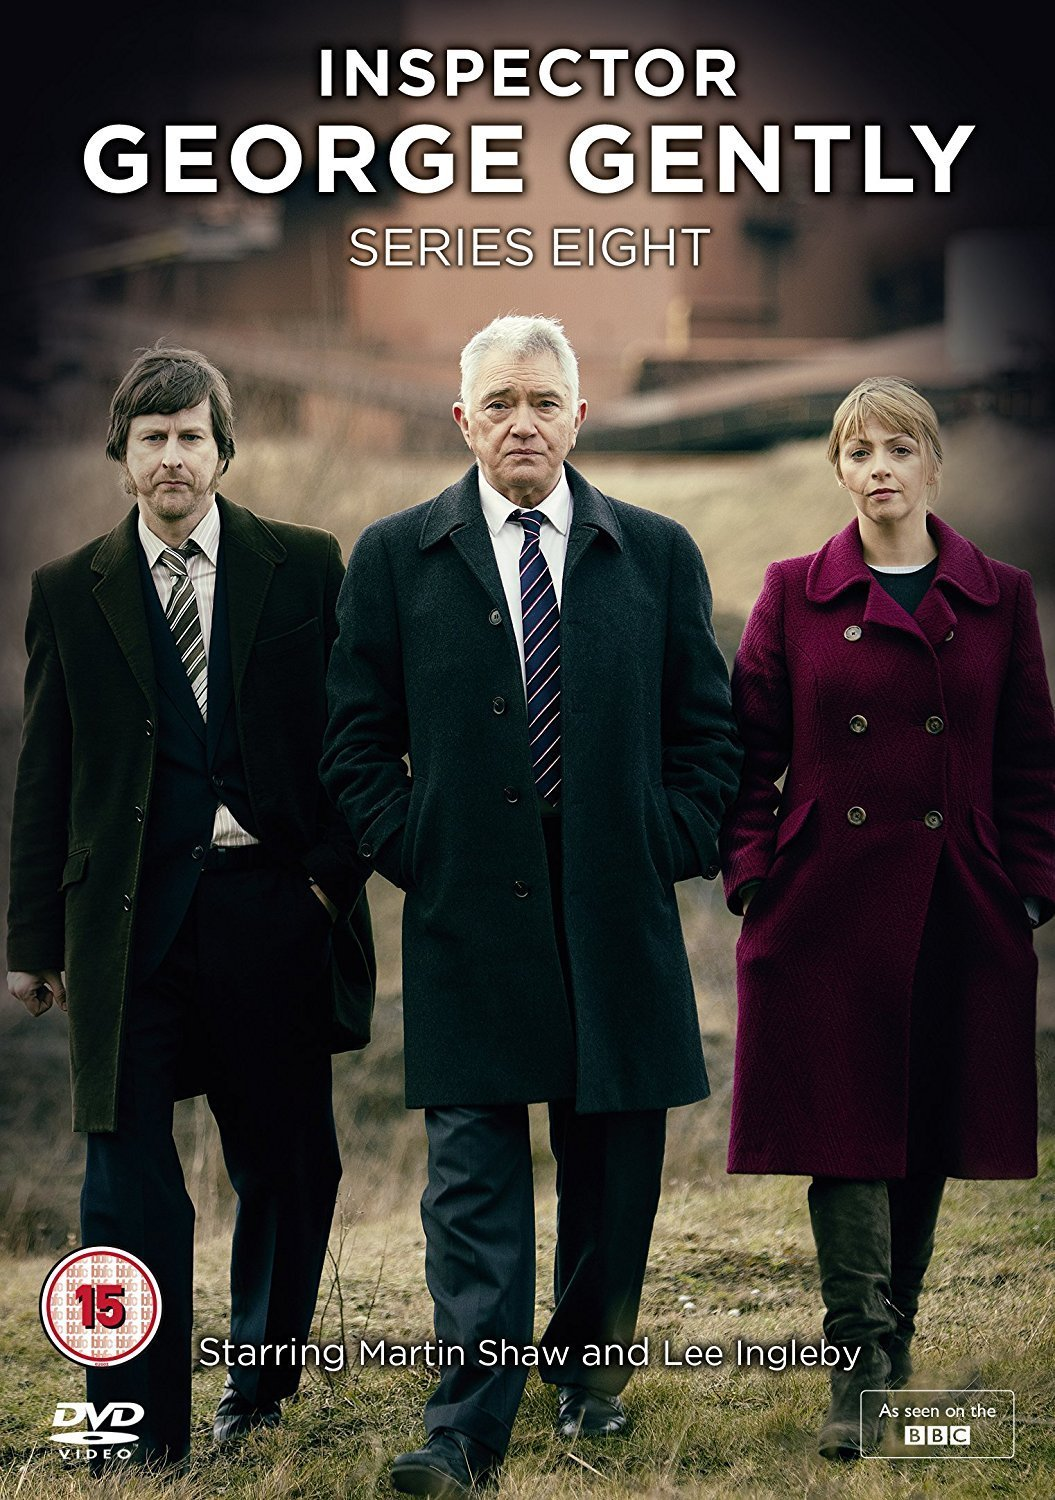 Check out this great #Giveaway, a chance to #Win Inspector George Gently Series 8 on DVD